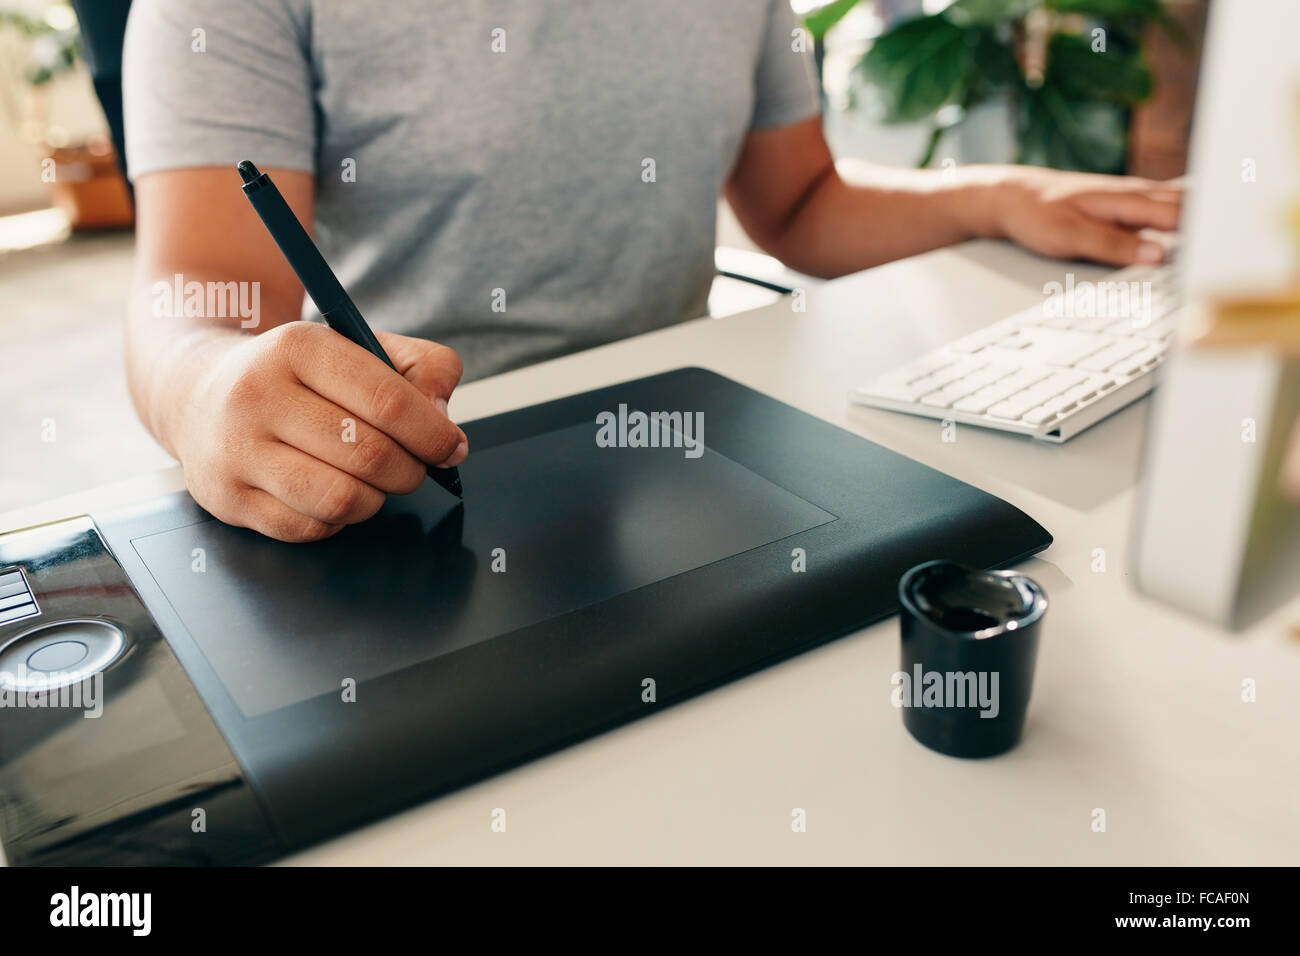 Graphic designer using digital tablet and desktop computer in the office. Close-up of designer's hand working - Stock Image